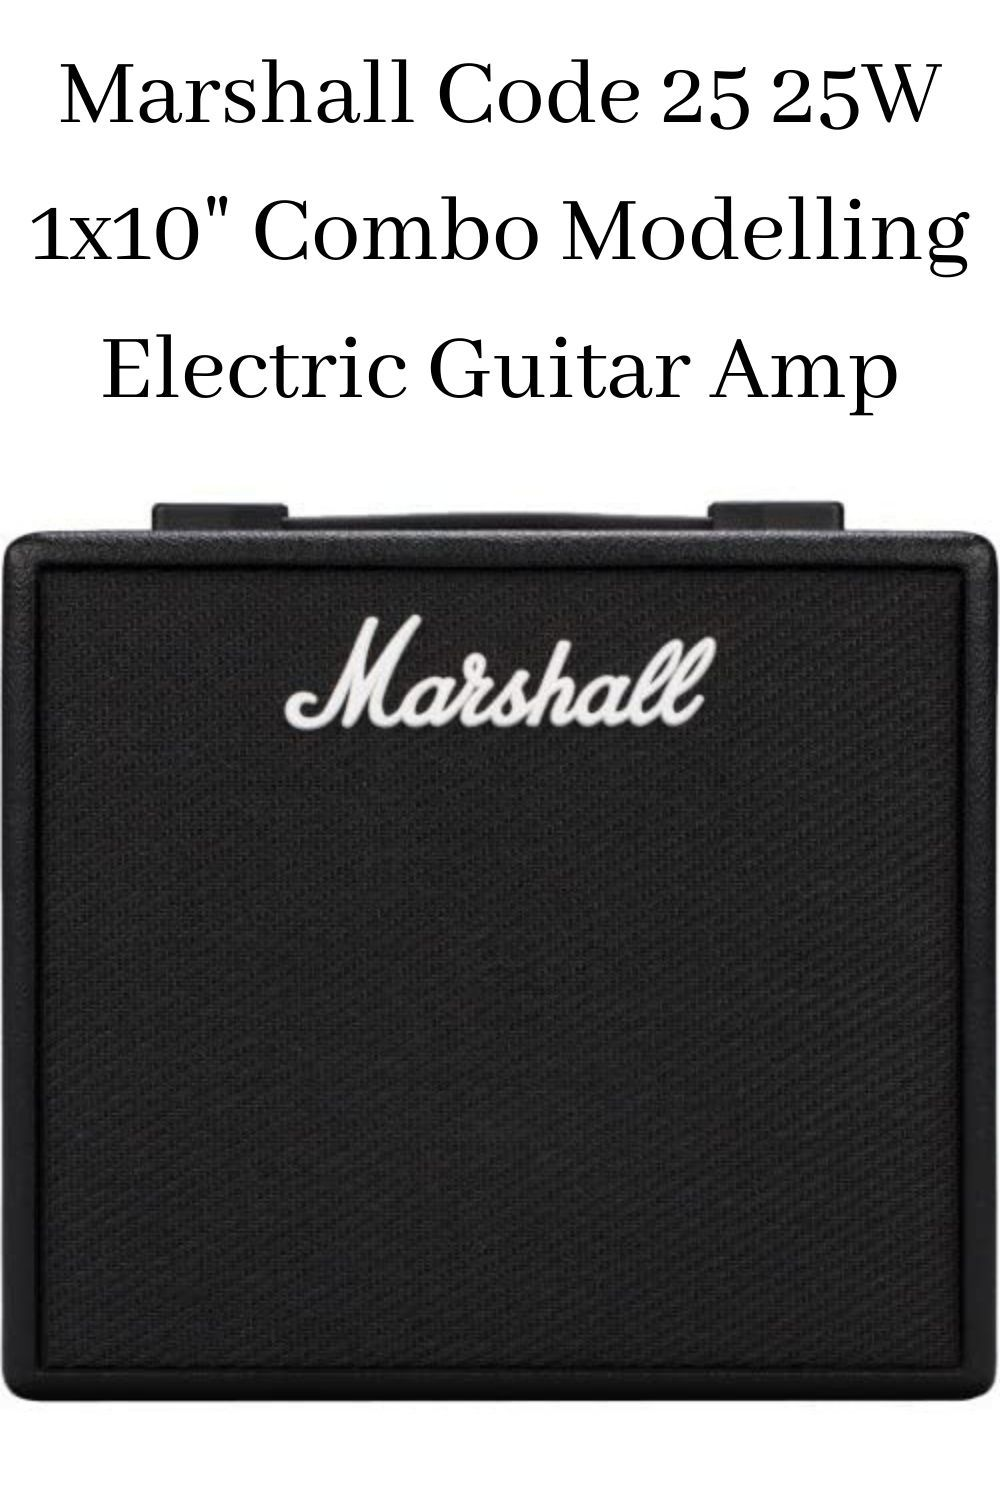 Pin On Great Acoustic Guitar Amps